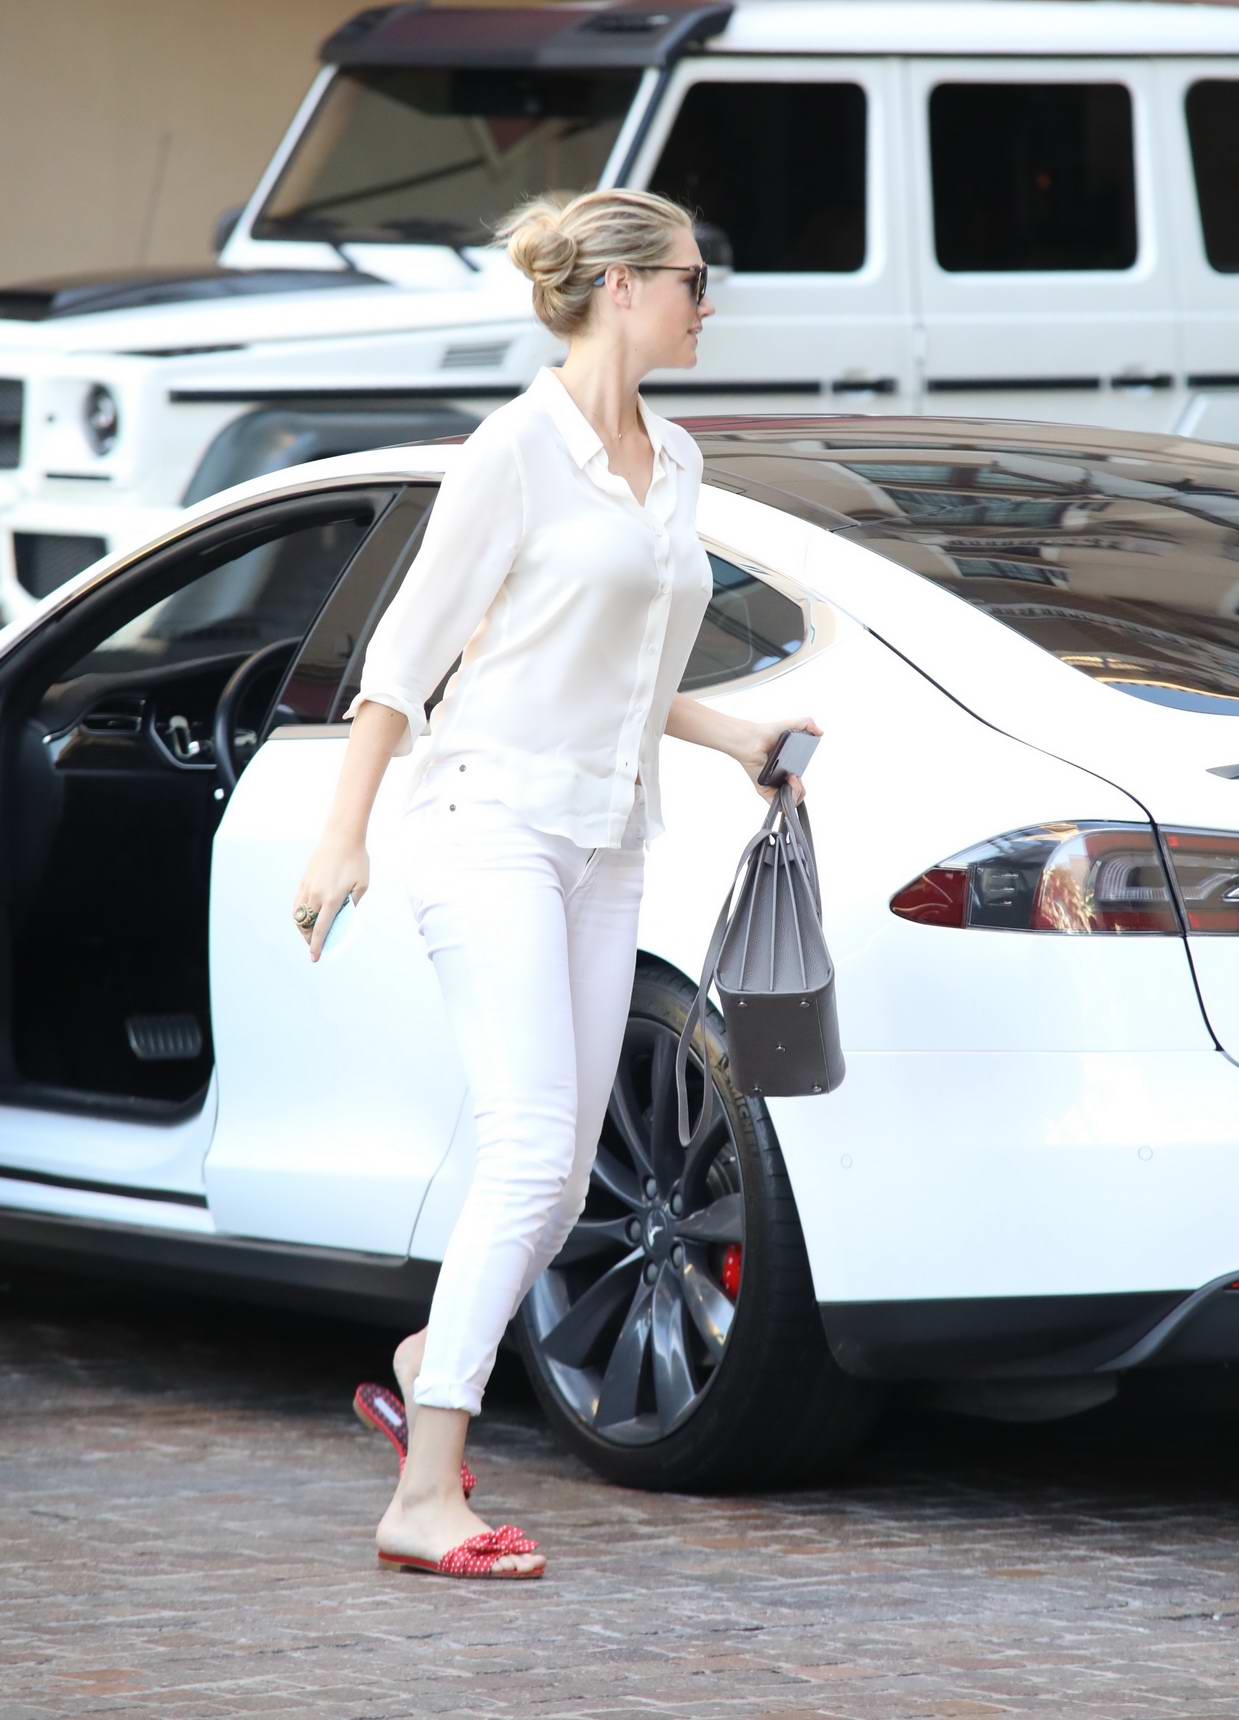 Kate Upton checks in and out of valet of a Hotel in New York